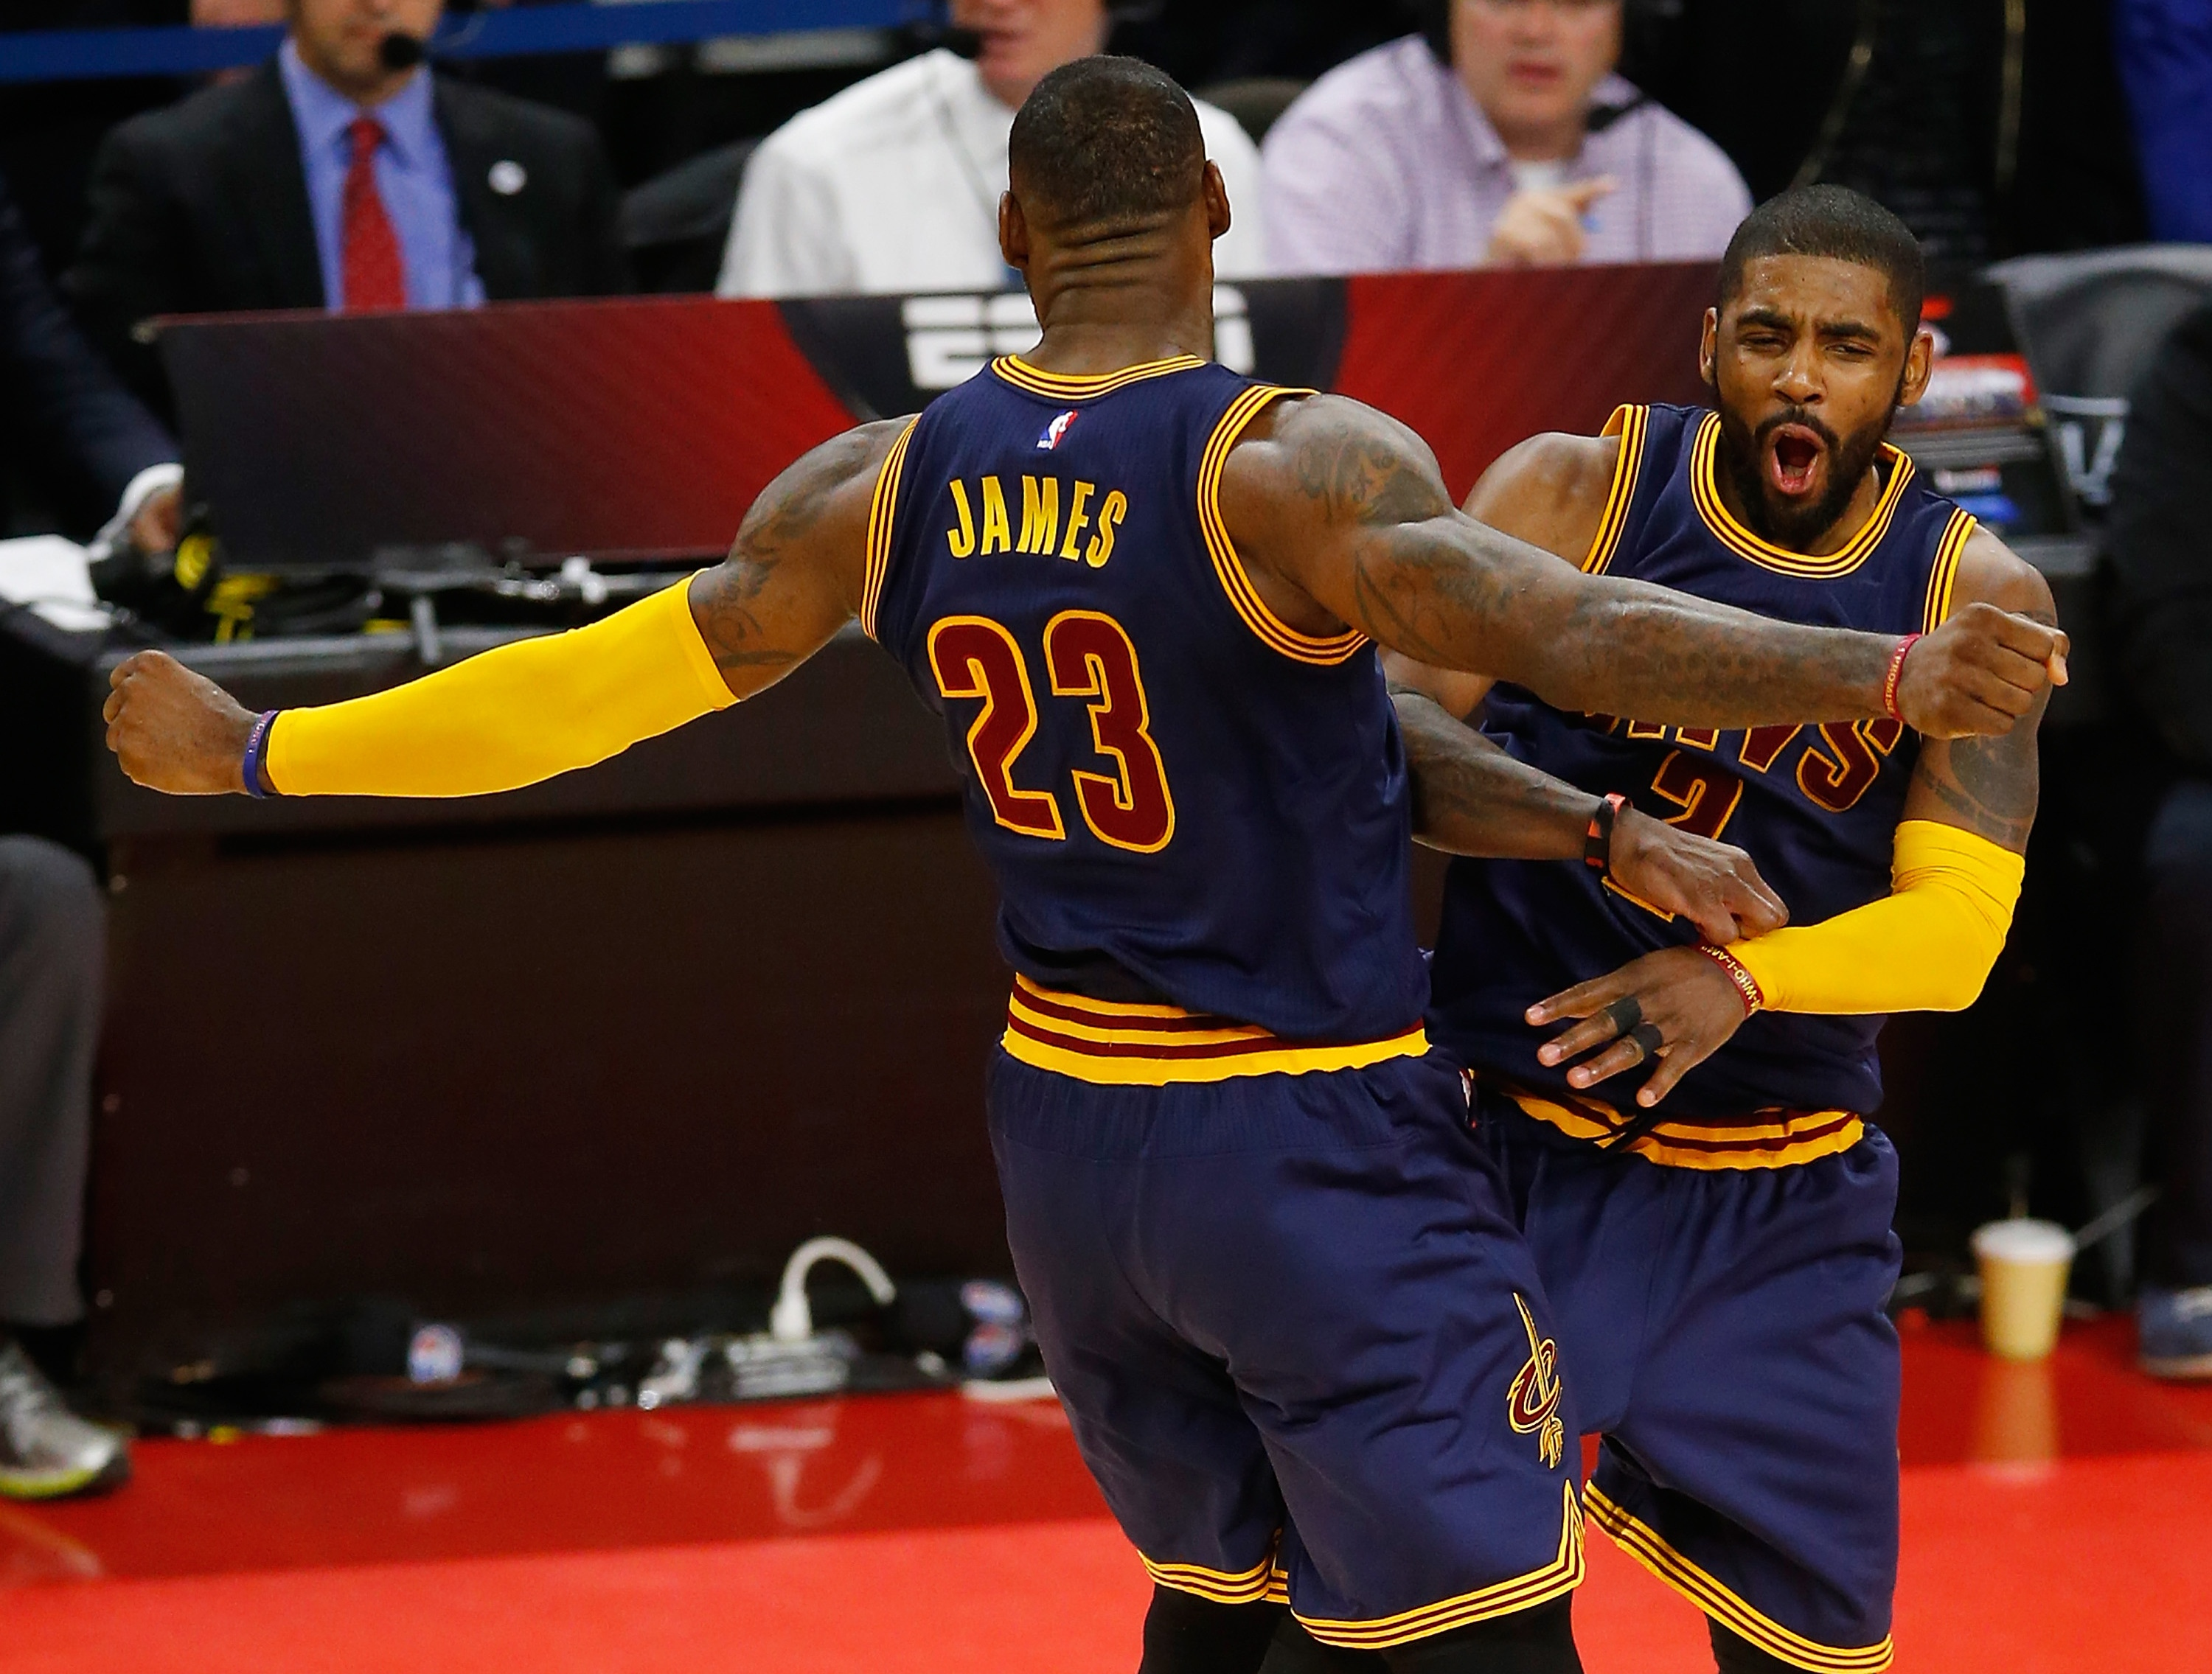 Irving's emerging game gives James, Cavs a big lift